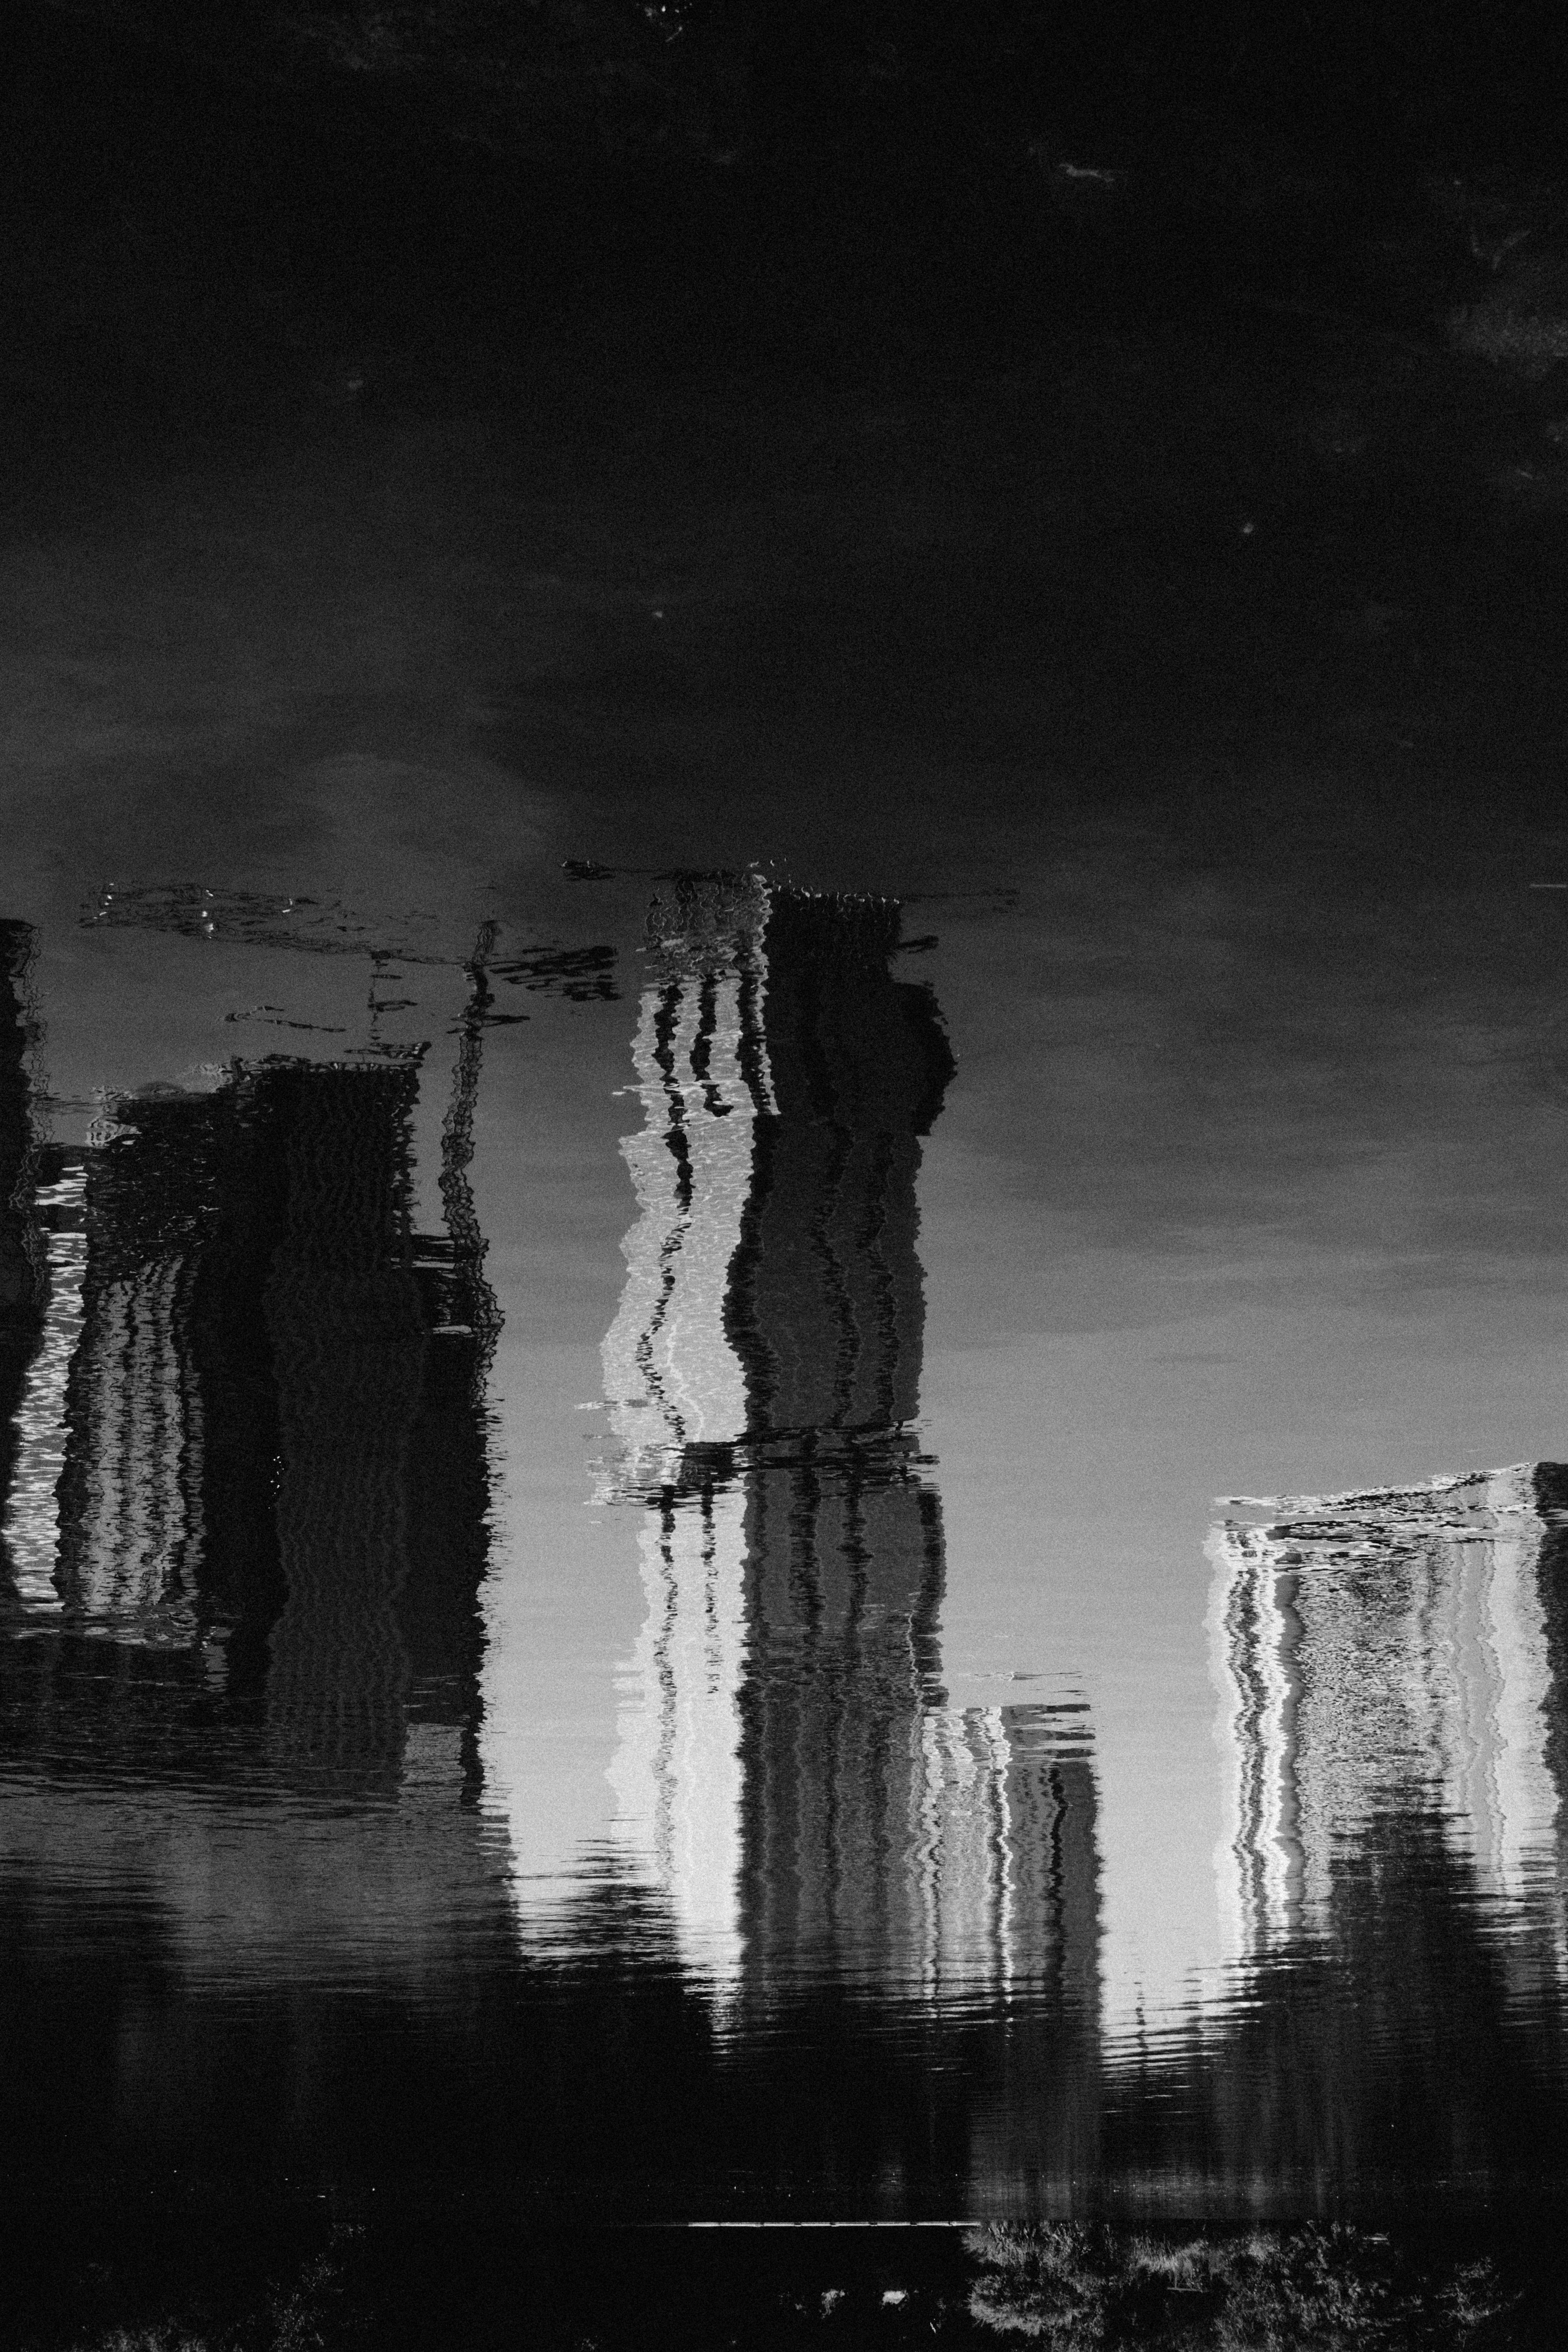 grayscale photo of reflection of buildings in water